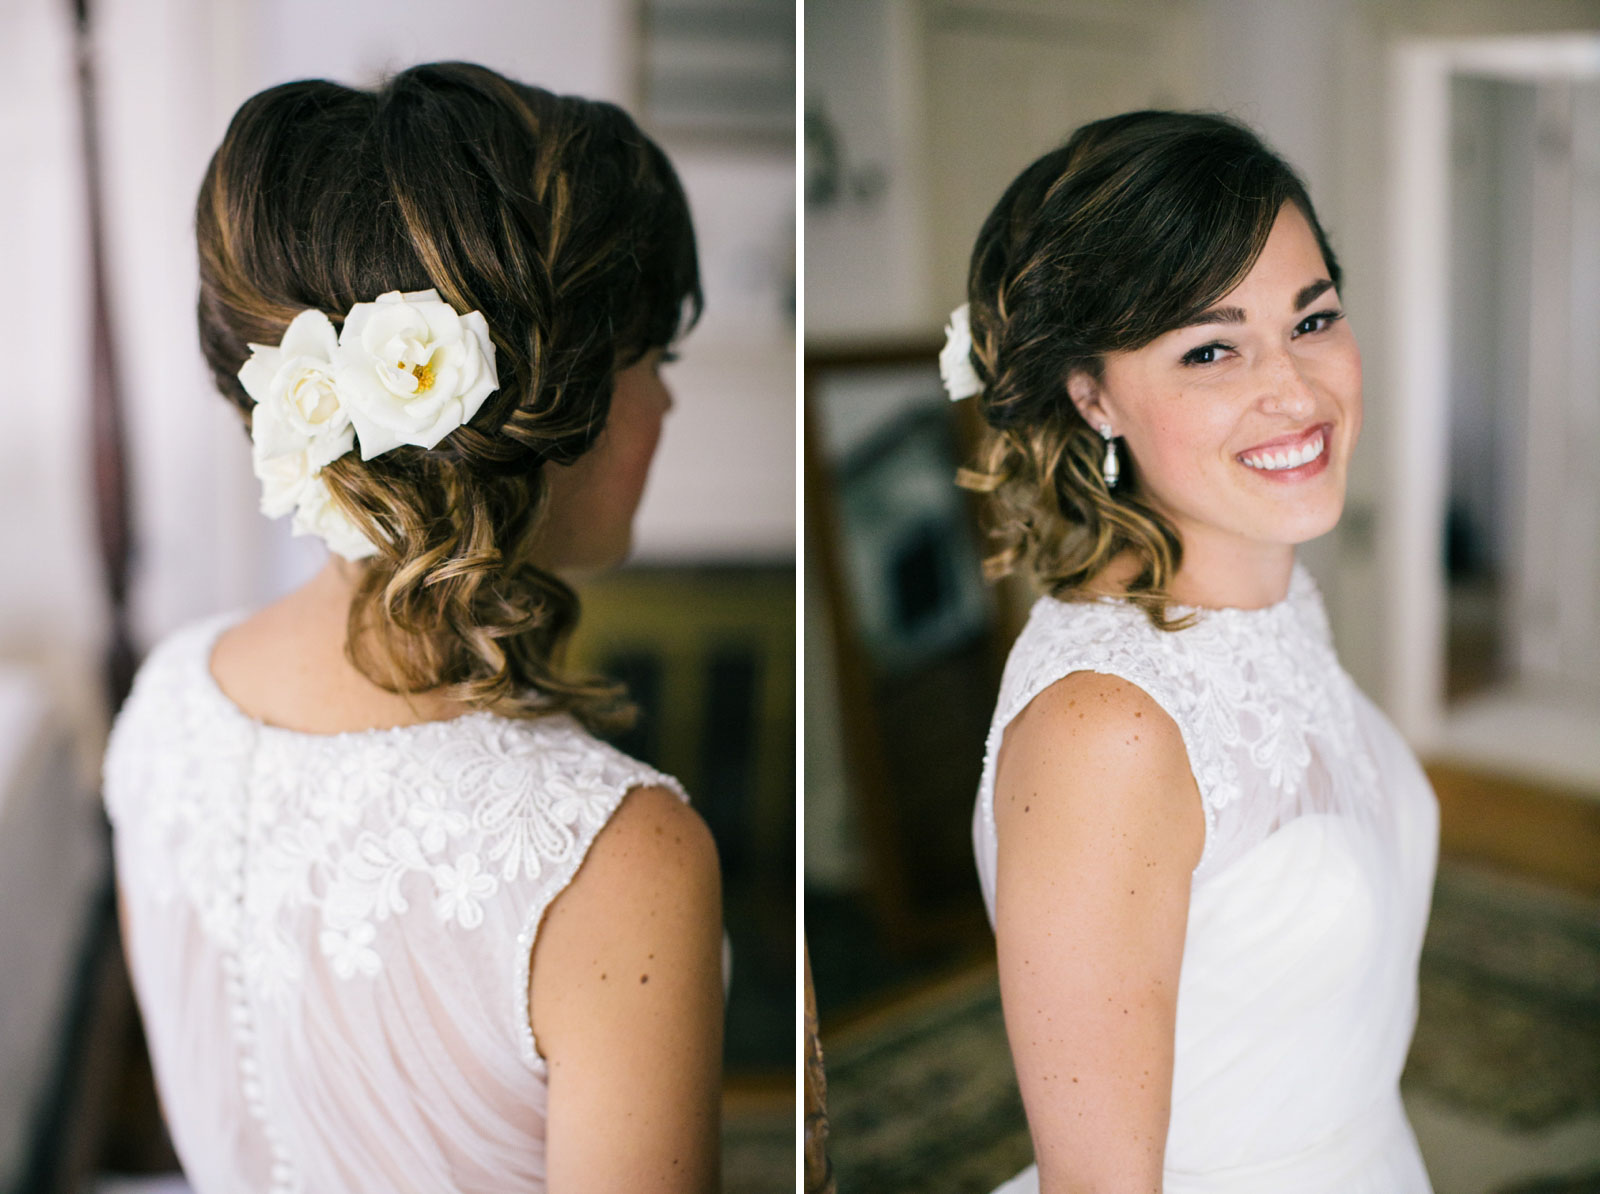 Detail of bride's hair with white roses and braided updo, portrait of bride smiling.